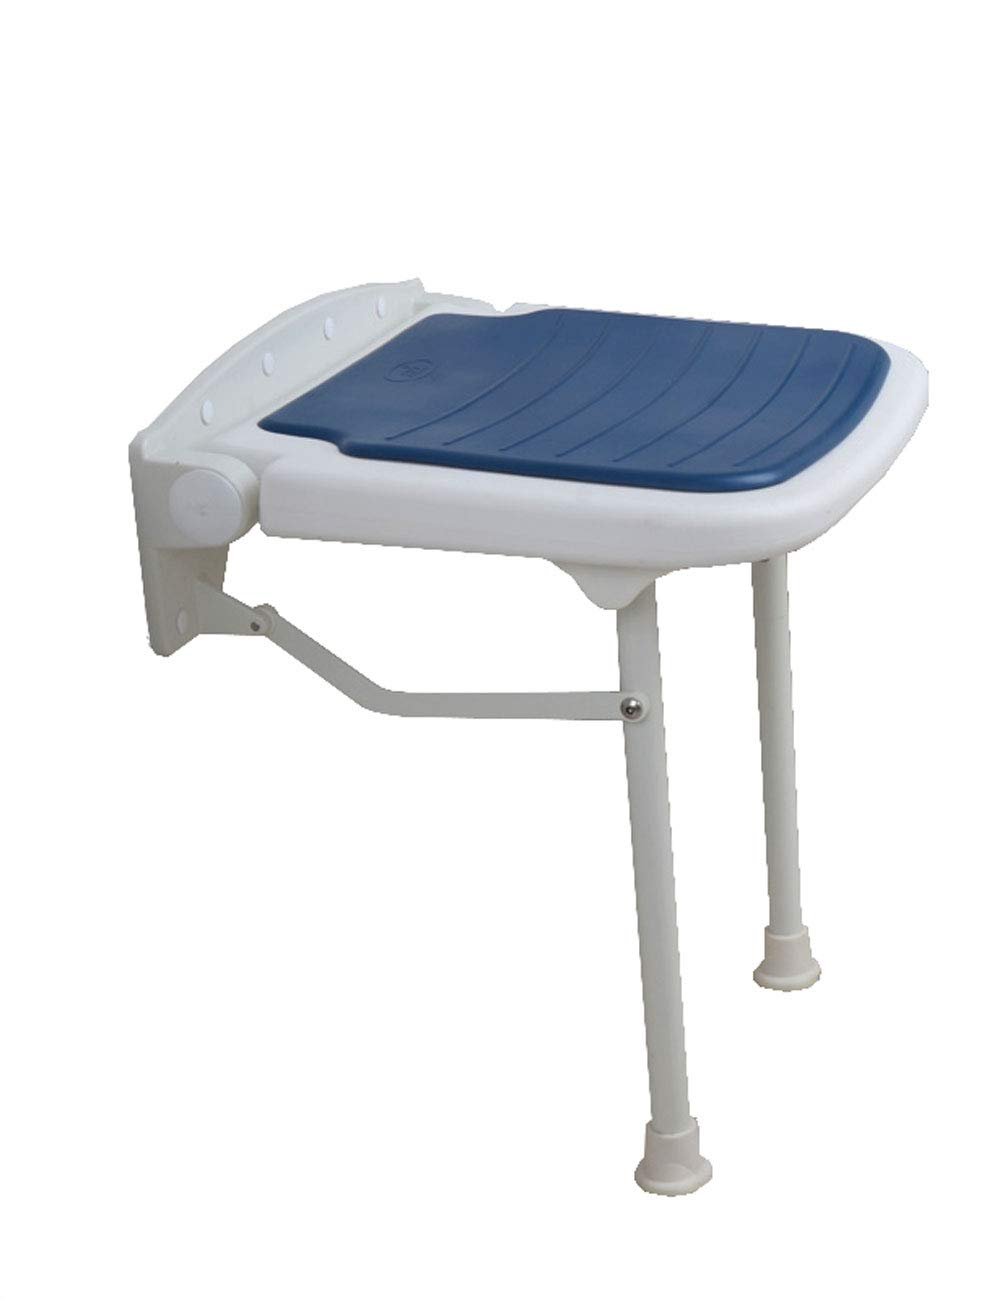 Kugga Folding Bath Seat Shower Bench  Wall Mounted, Height of 5.7-6ft (Color : Blue)